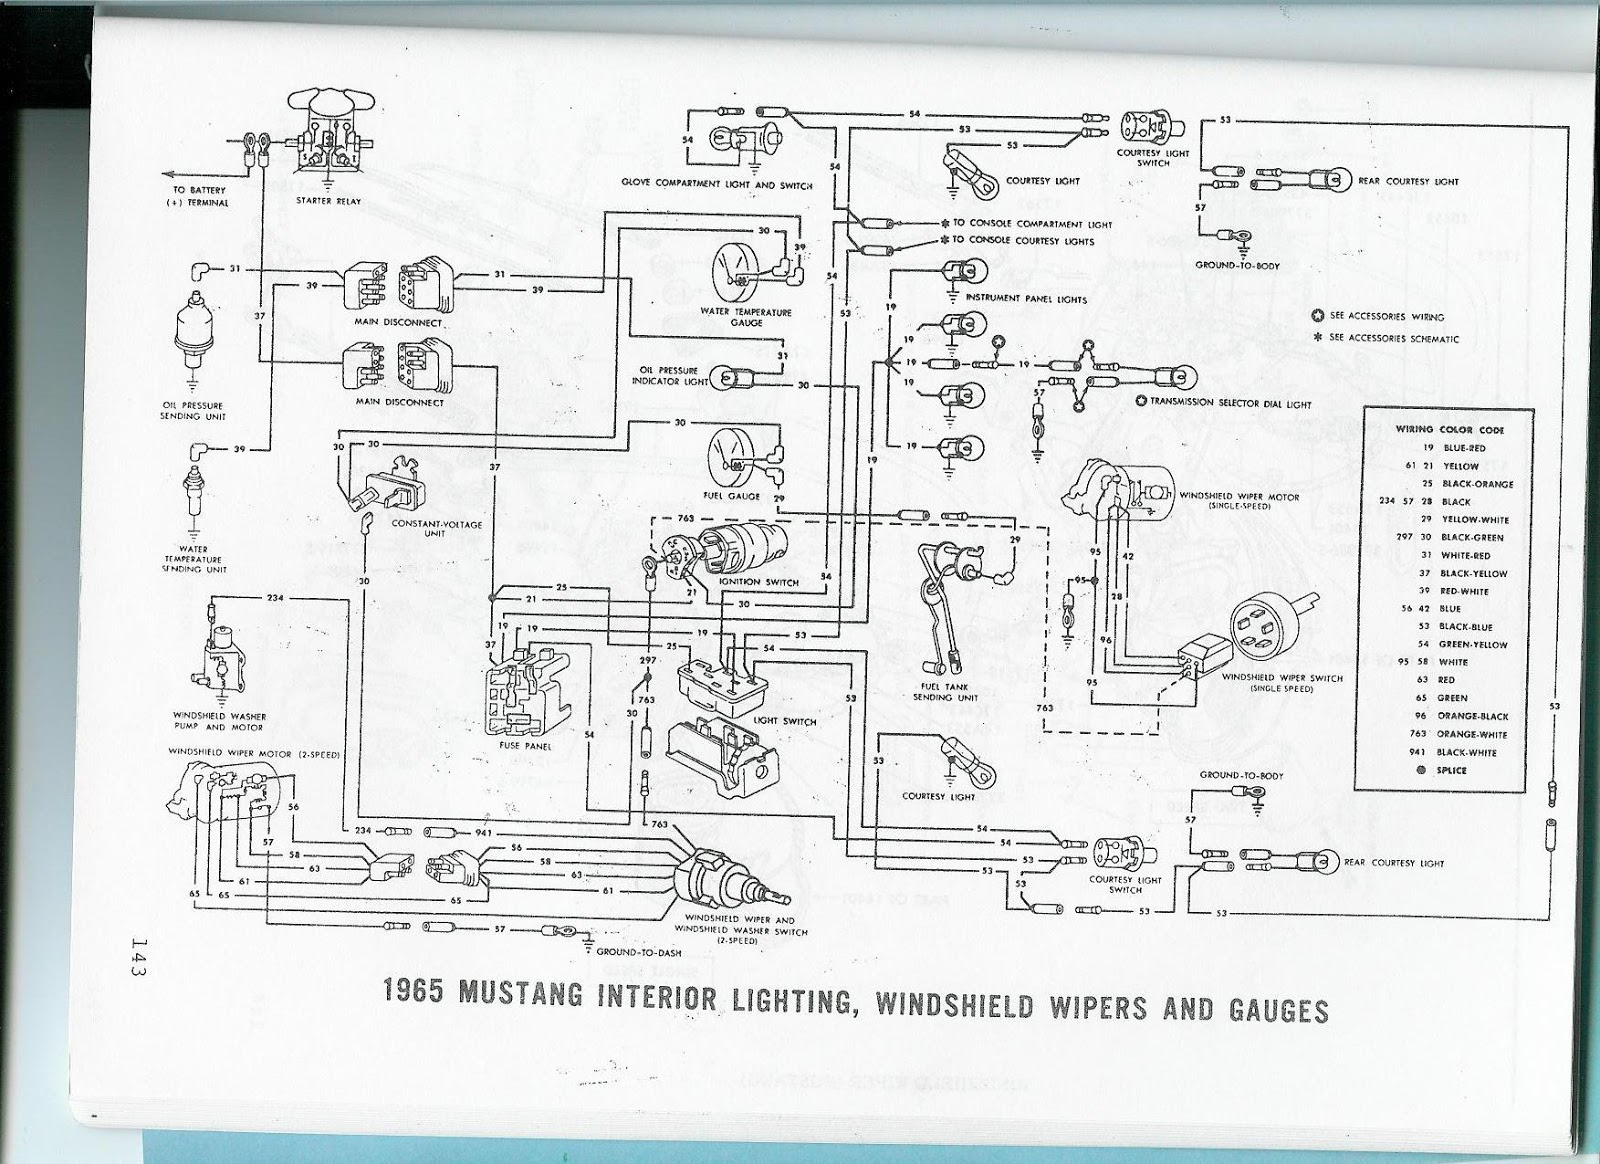 the care and feeding of ponies 1965 mustang wiring diagrams rh thecareandfeedingofponies blogspot com 65 mustang electrical schematic 1965 Mustang Diagram